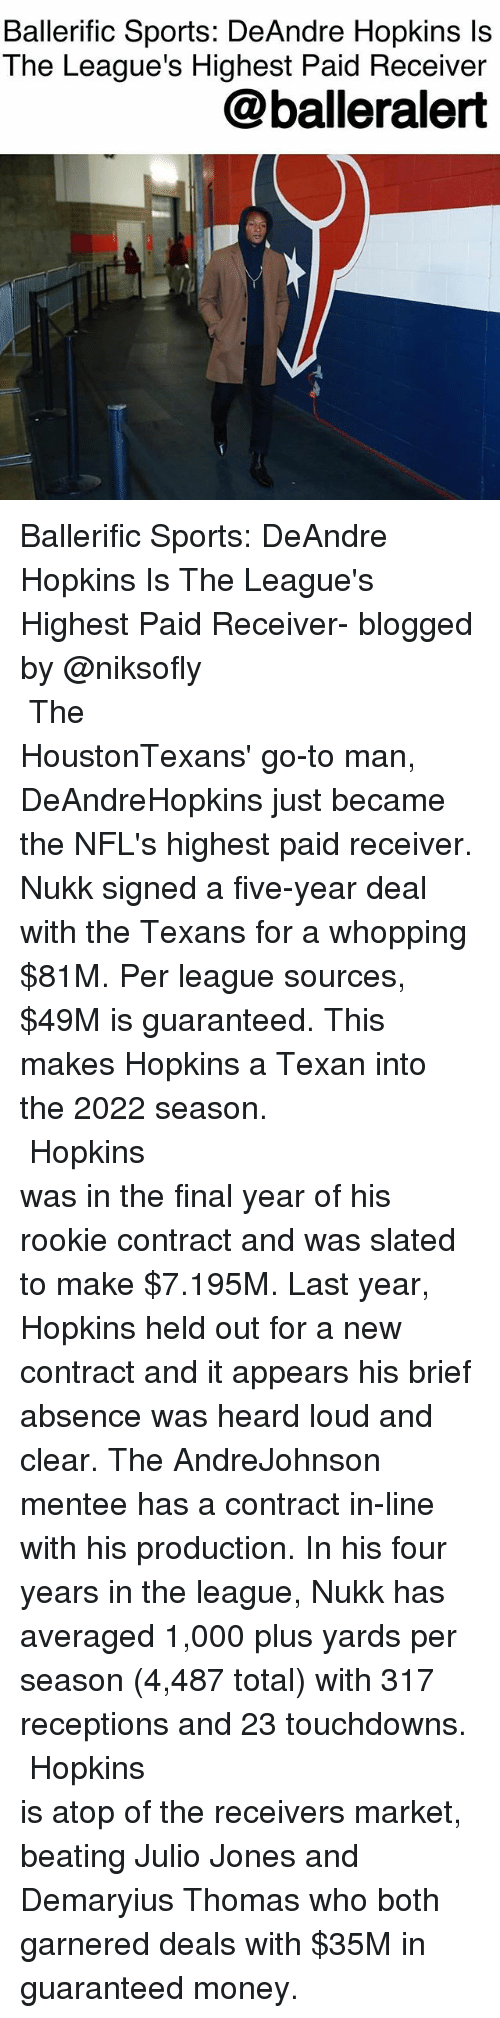 Heardly: Ballerific Sports: DeAndre Hopkins ls  The League's Highest Paid Receiver  @balleralert Ballerific Sports: DeAndre Hopkins Is The League's Highest Paid Receiver- blogged by @niksofly ⠀⠀⠀⠀⠀⠀⠀⠀⠀⠀⠀⠀⠀⠀⠀⠀⠀⠀⠀⠀⠀⠀⠀⠀⠀⠀⠀⠀⠀⠀⠀⠀⠀⠀⠀⠀ The HoustonTexans' go-to man, DeAndreHopkins just became the NFL's highest paid receiver. Nukk signed a five-year deal with the Texans for a whopping $81M. Per league sources, $49M is guaranteed. This makes Hopkins a Texan into the 2022 season. ⠀⠀⠀⠀⠀⠀⠀⠀⠀⠀⠀⠀⠀⠀⠀⠀⠀⠀⠀⠀⠀⠀⠀⠀⠀⠀⠀⠀⠀⠀⠀⠀⠀⠀⠀⠀ Hopkins was in the final year of his rookie contract and was slated to make $7.195M. Last year, Hopkins held out for a new contract and it appears his brief absence was heard loud and clear. The AndreJohnson mentee has a contract in-line with his production. In his four years in the league, Nukk has averaged 1,000 plus yards per season (4,487 total) with 317 receptions and 23 touchdowns. ⠀⠀⠀⠀⠀⠀⠀⠀⠀⠀⠀⠀⠀⠀⠀⠀⠀⠀⠀⠀⠀⠀⠀⠀⠀⠀⠀⠀⠀⠀⠀⠀⠀⠀⠀⠀ Hopkins is atop of the receivers market, beating Julio Jones and Demaryius Thomas who both garnered deals with $35M in guaranteed money.